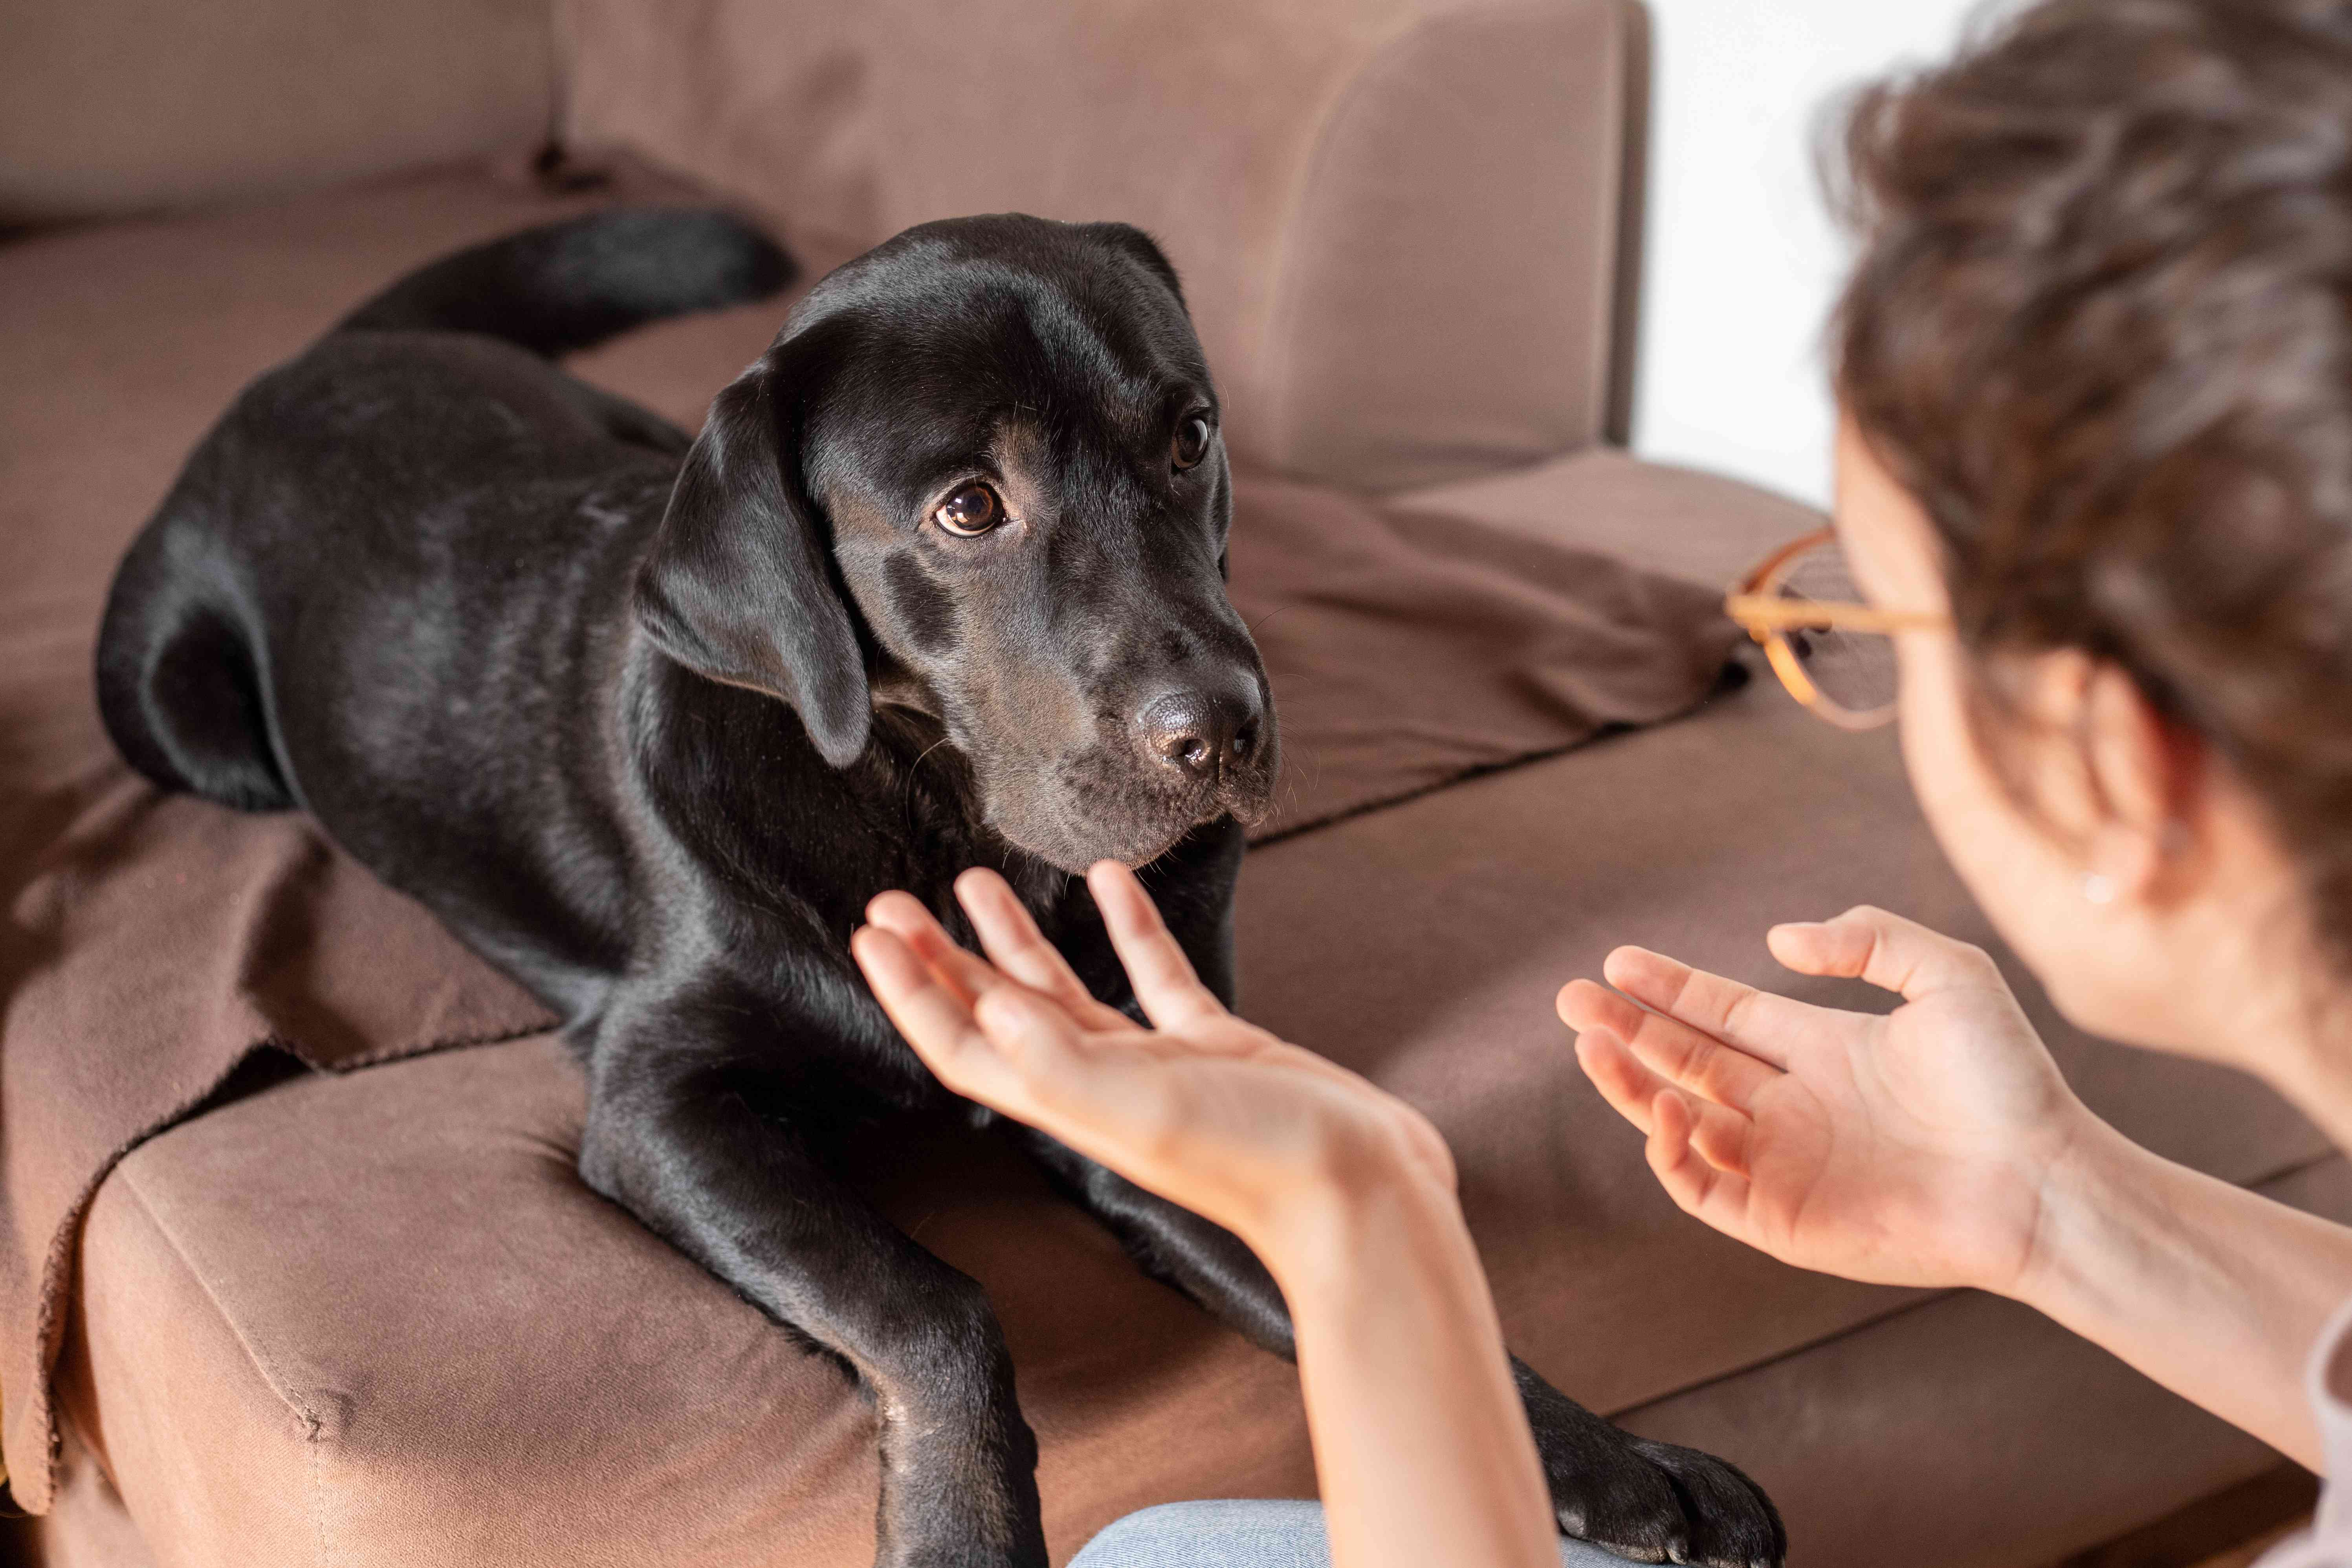 person talks to dog gesturing with hands while dog looks confused